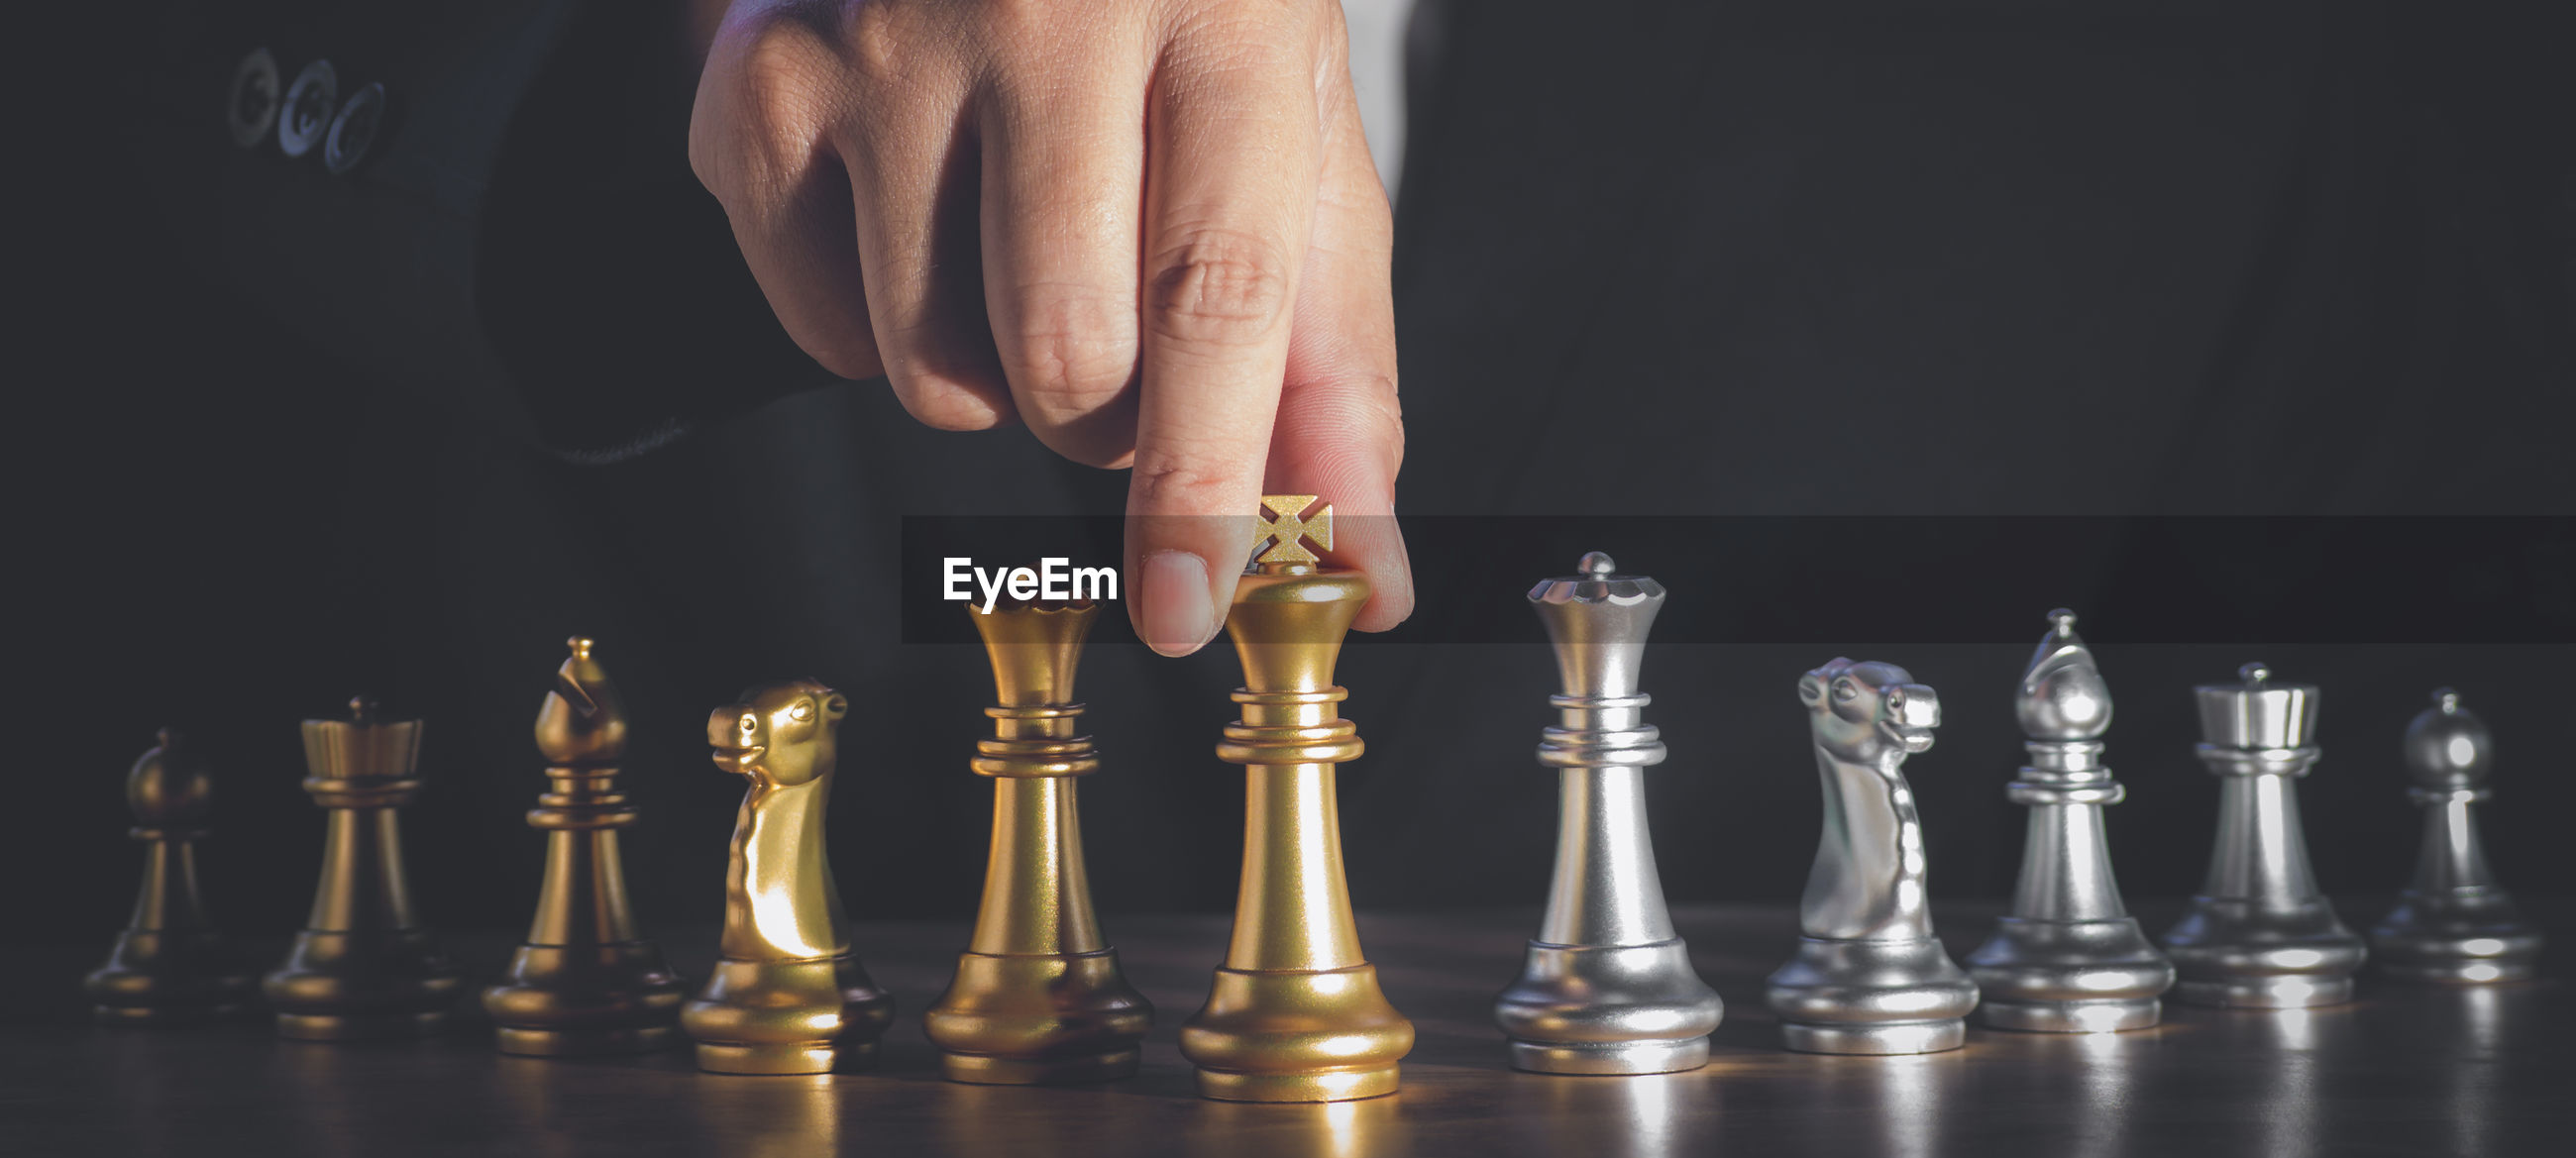 LOW ANGLE VIEW OF MAN AND CHESS PIECES ON TABLE